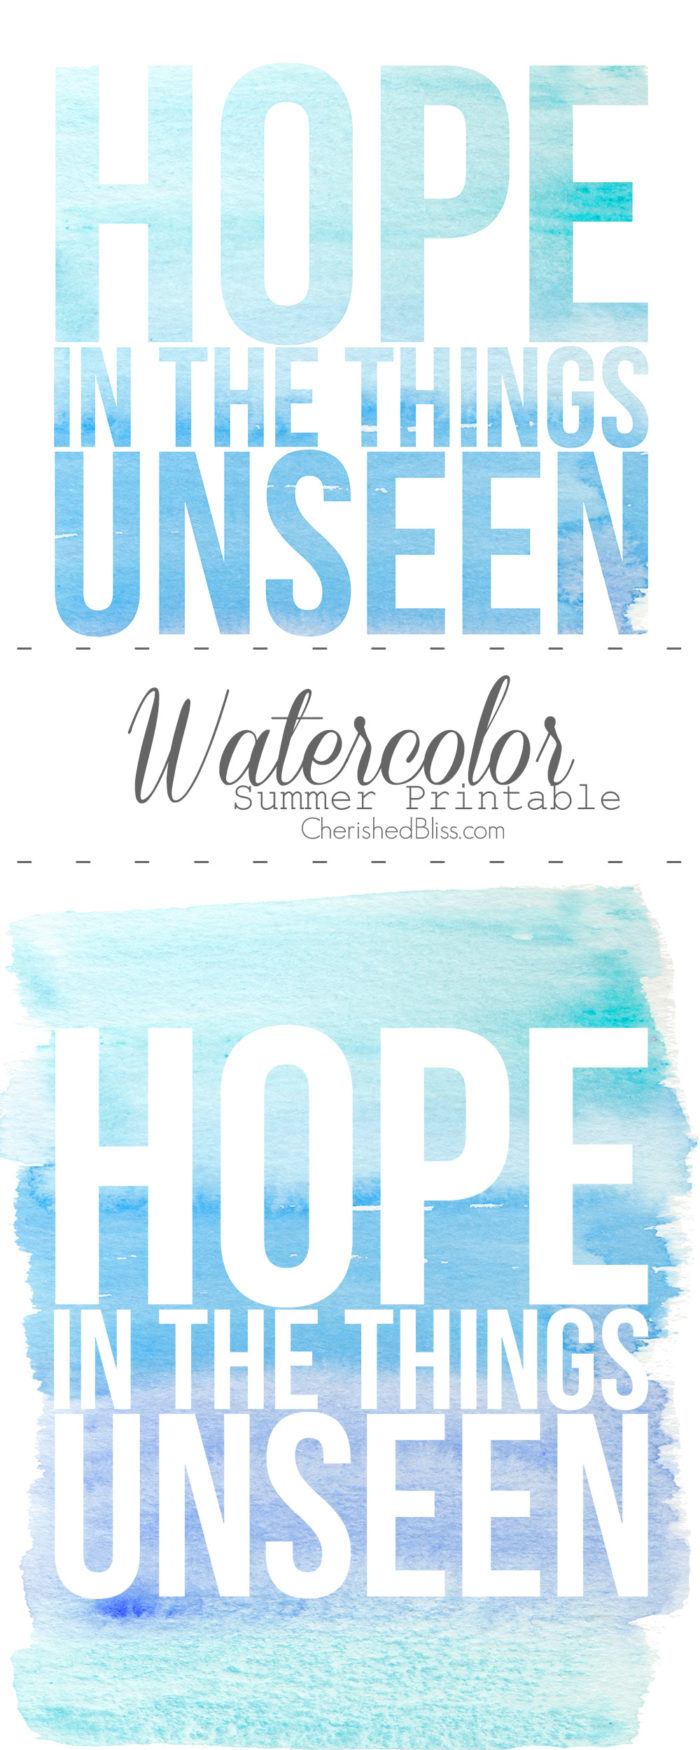 Watercolor Summer Printable